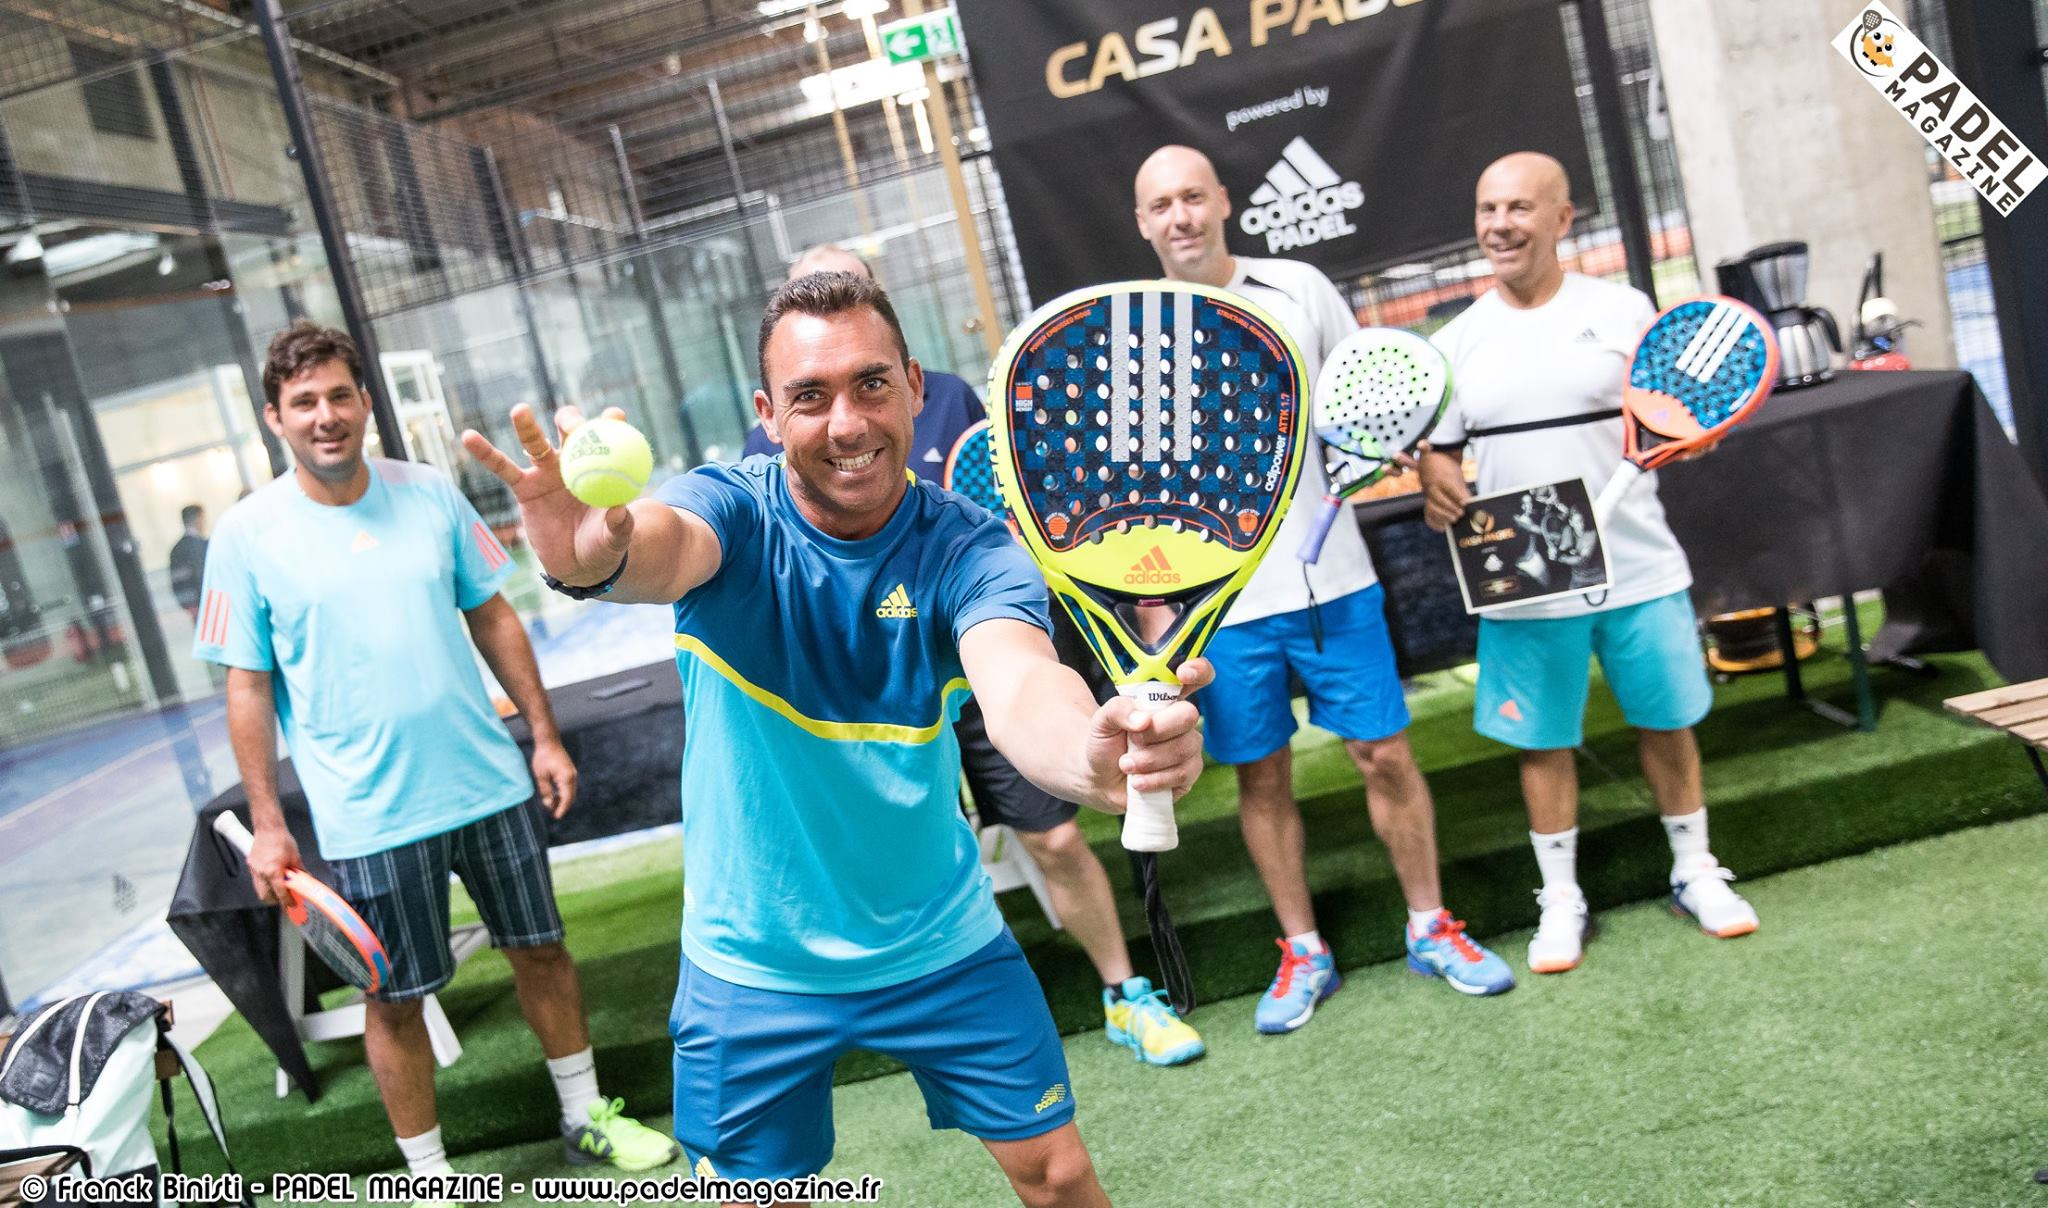 casa-padel-paris